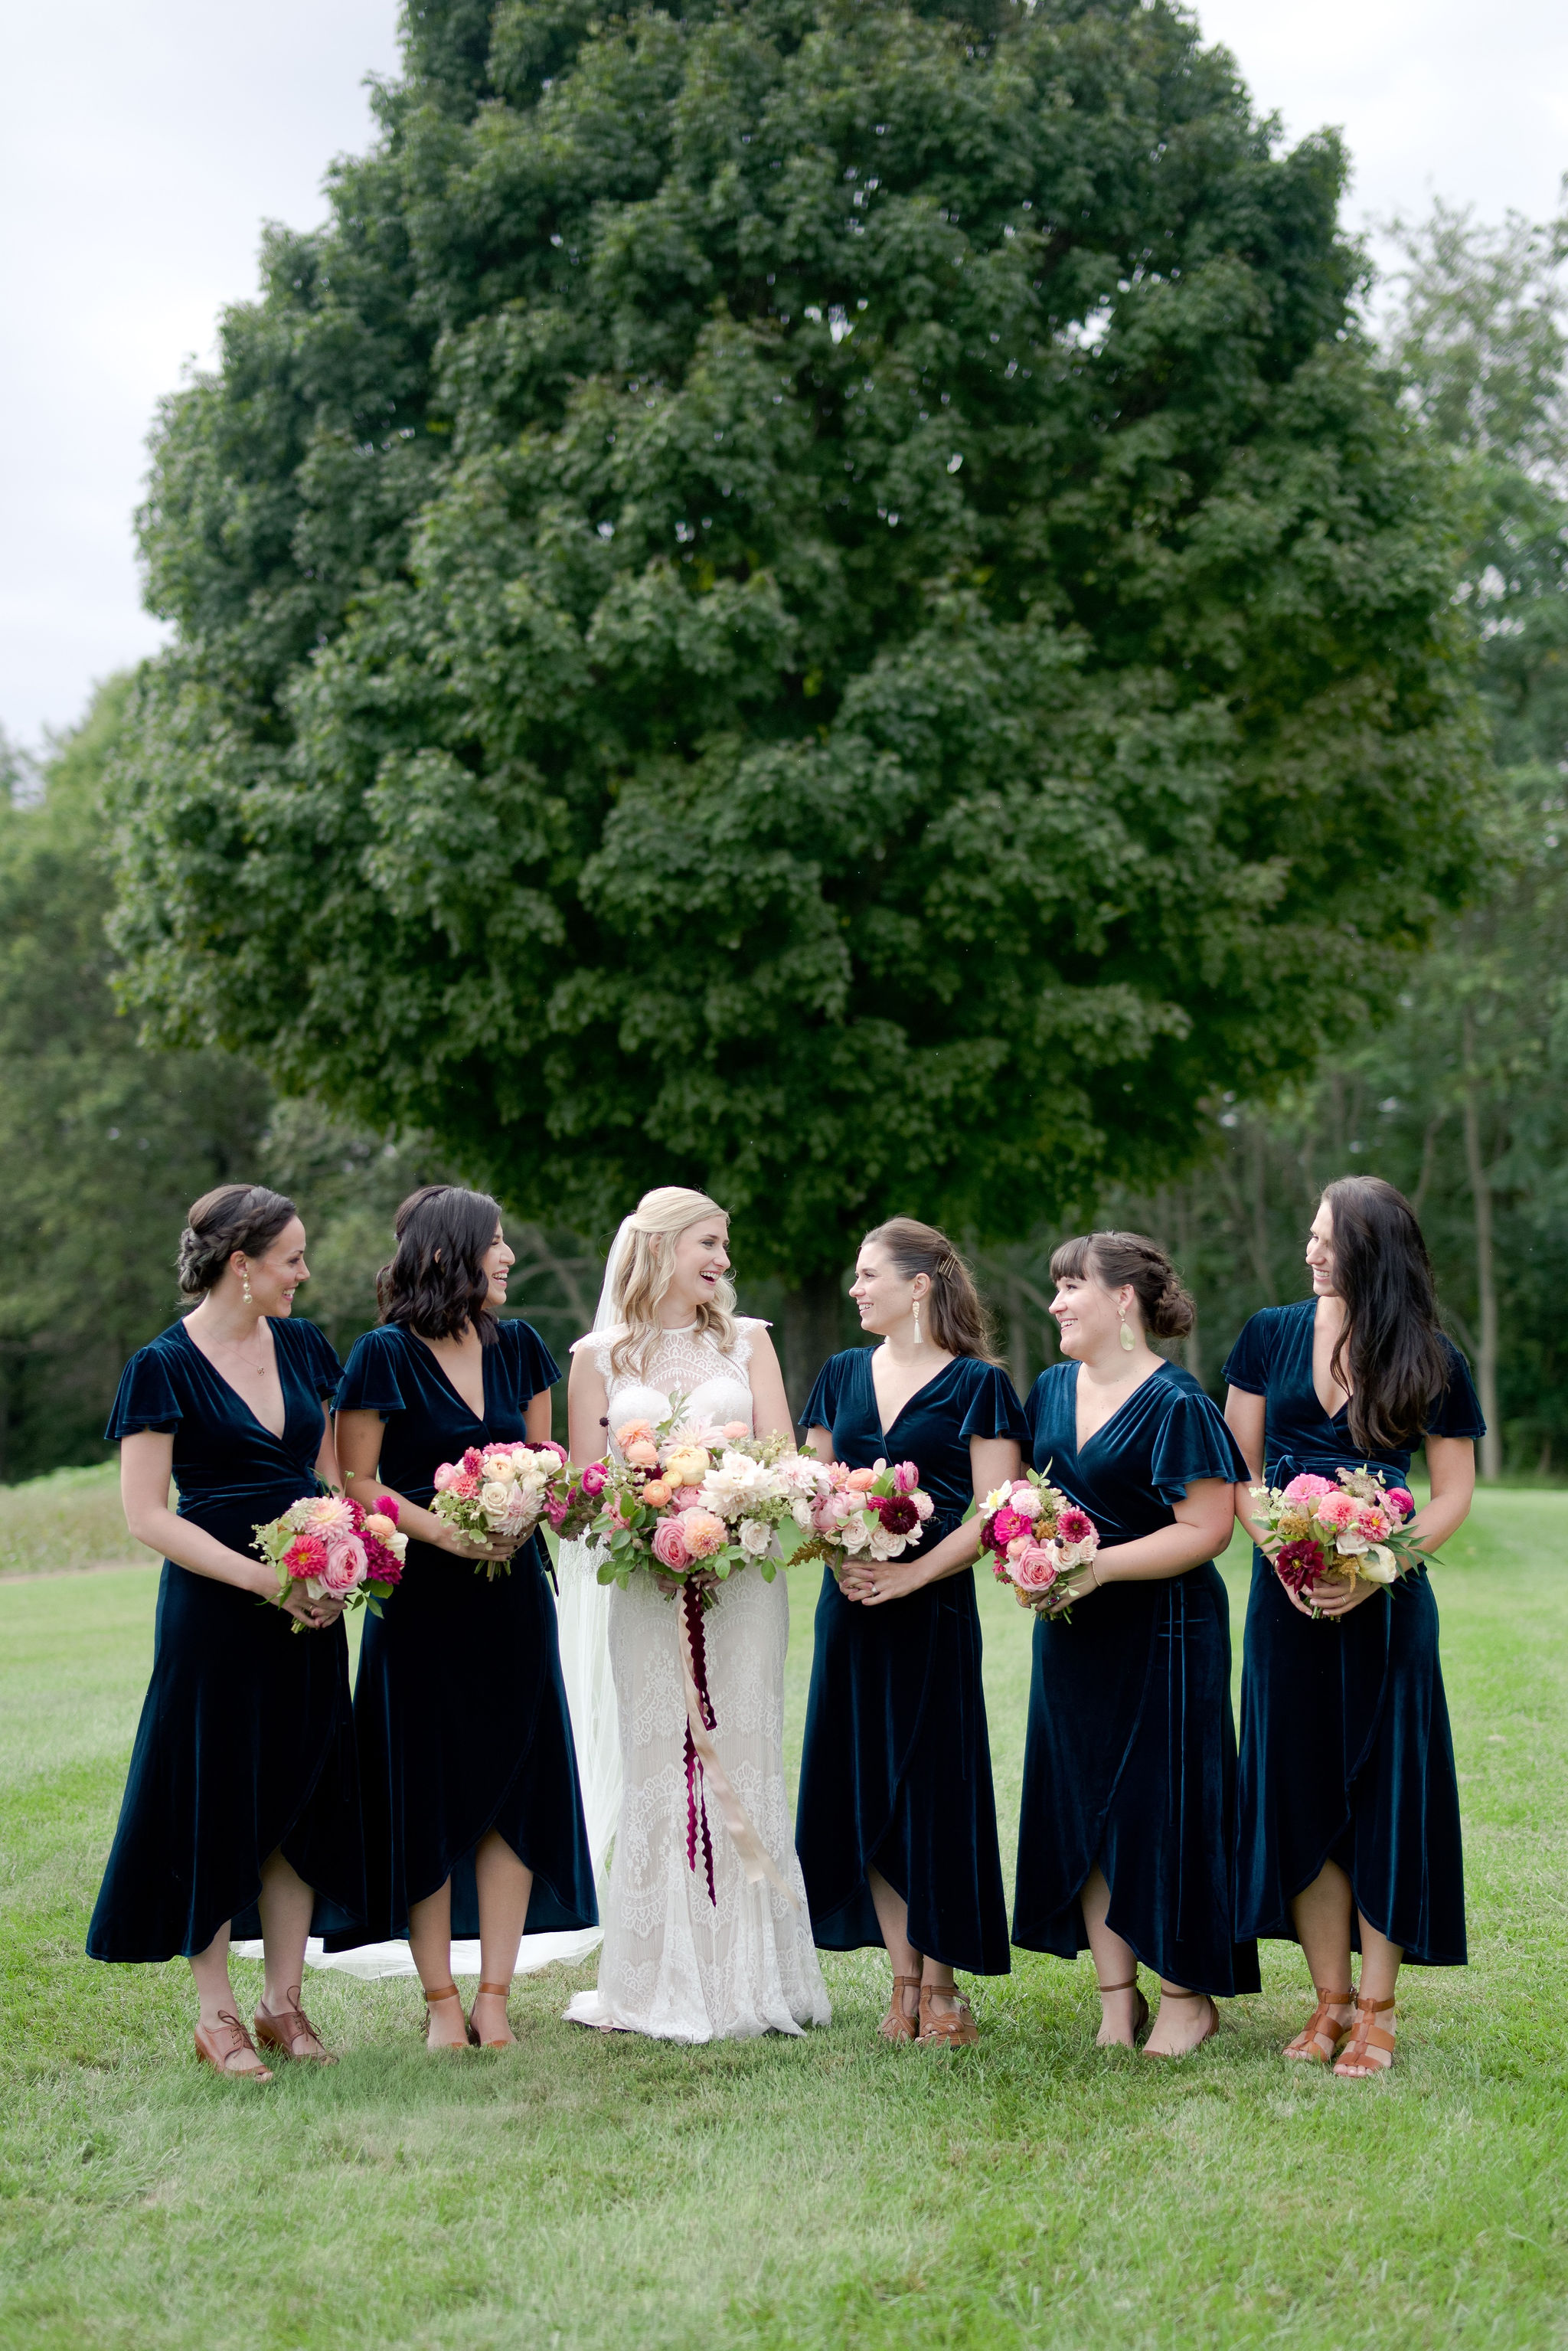 J+C at Private Residence | Fall Wedding | Sophie Felts Floral Design | DC Wedding Florist | MD Wedding Florist |